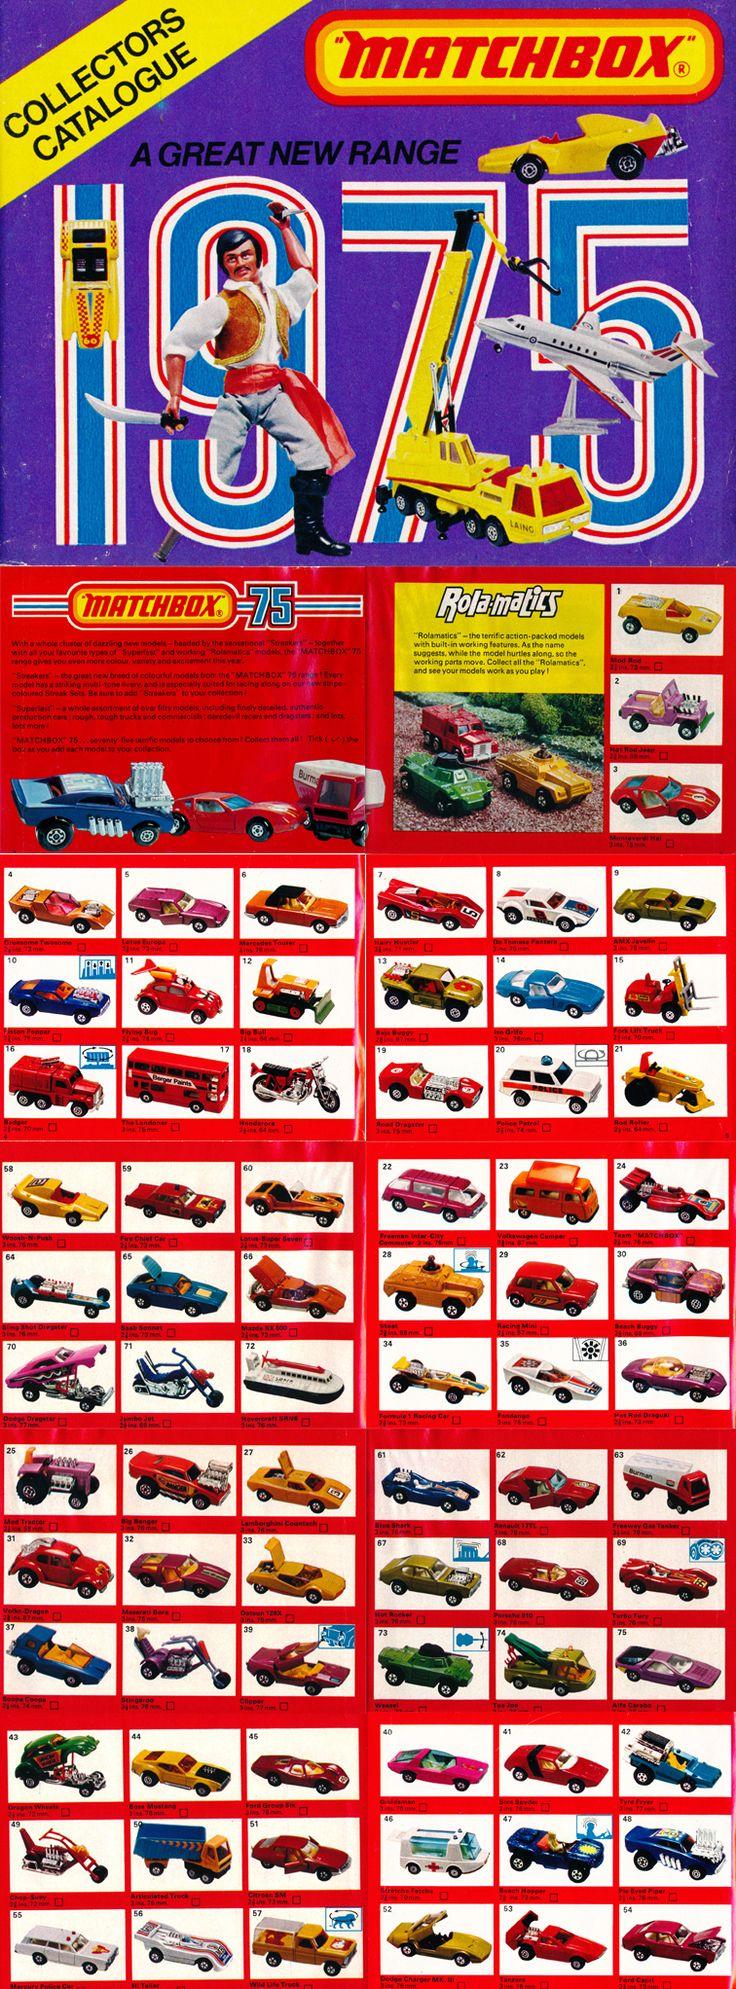 Matchbox catalogue 1975 https://plus.google.com/+JohnPruittMotorCompanyMurrayville/posts